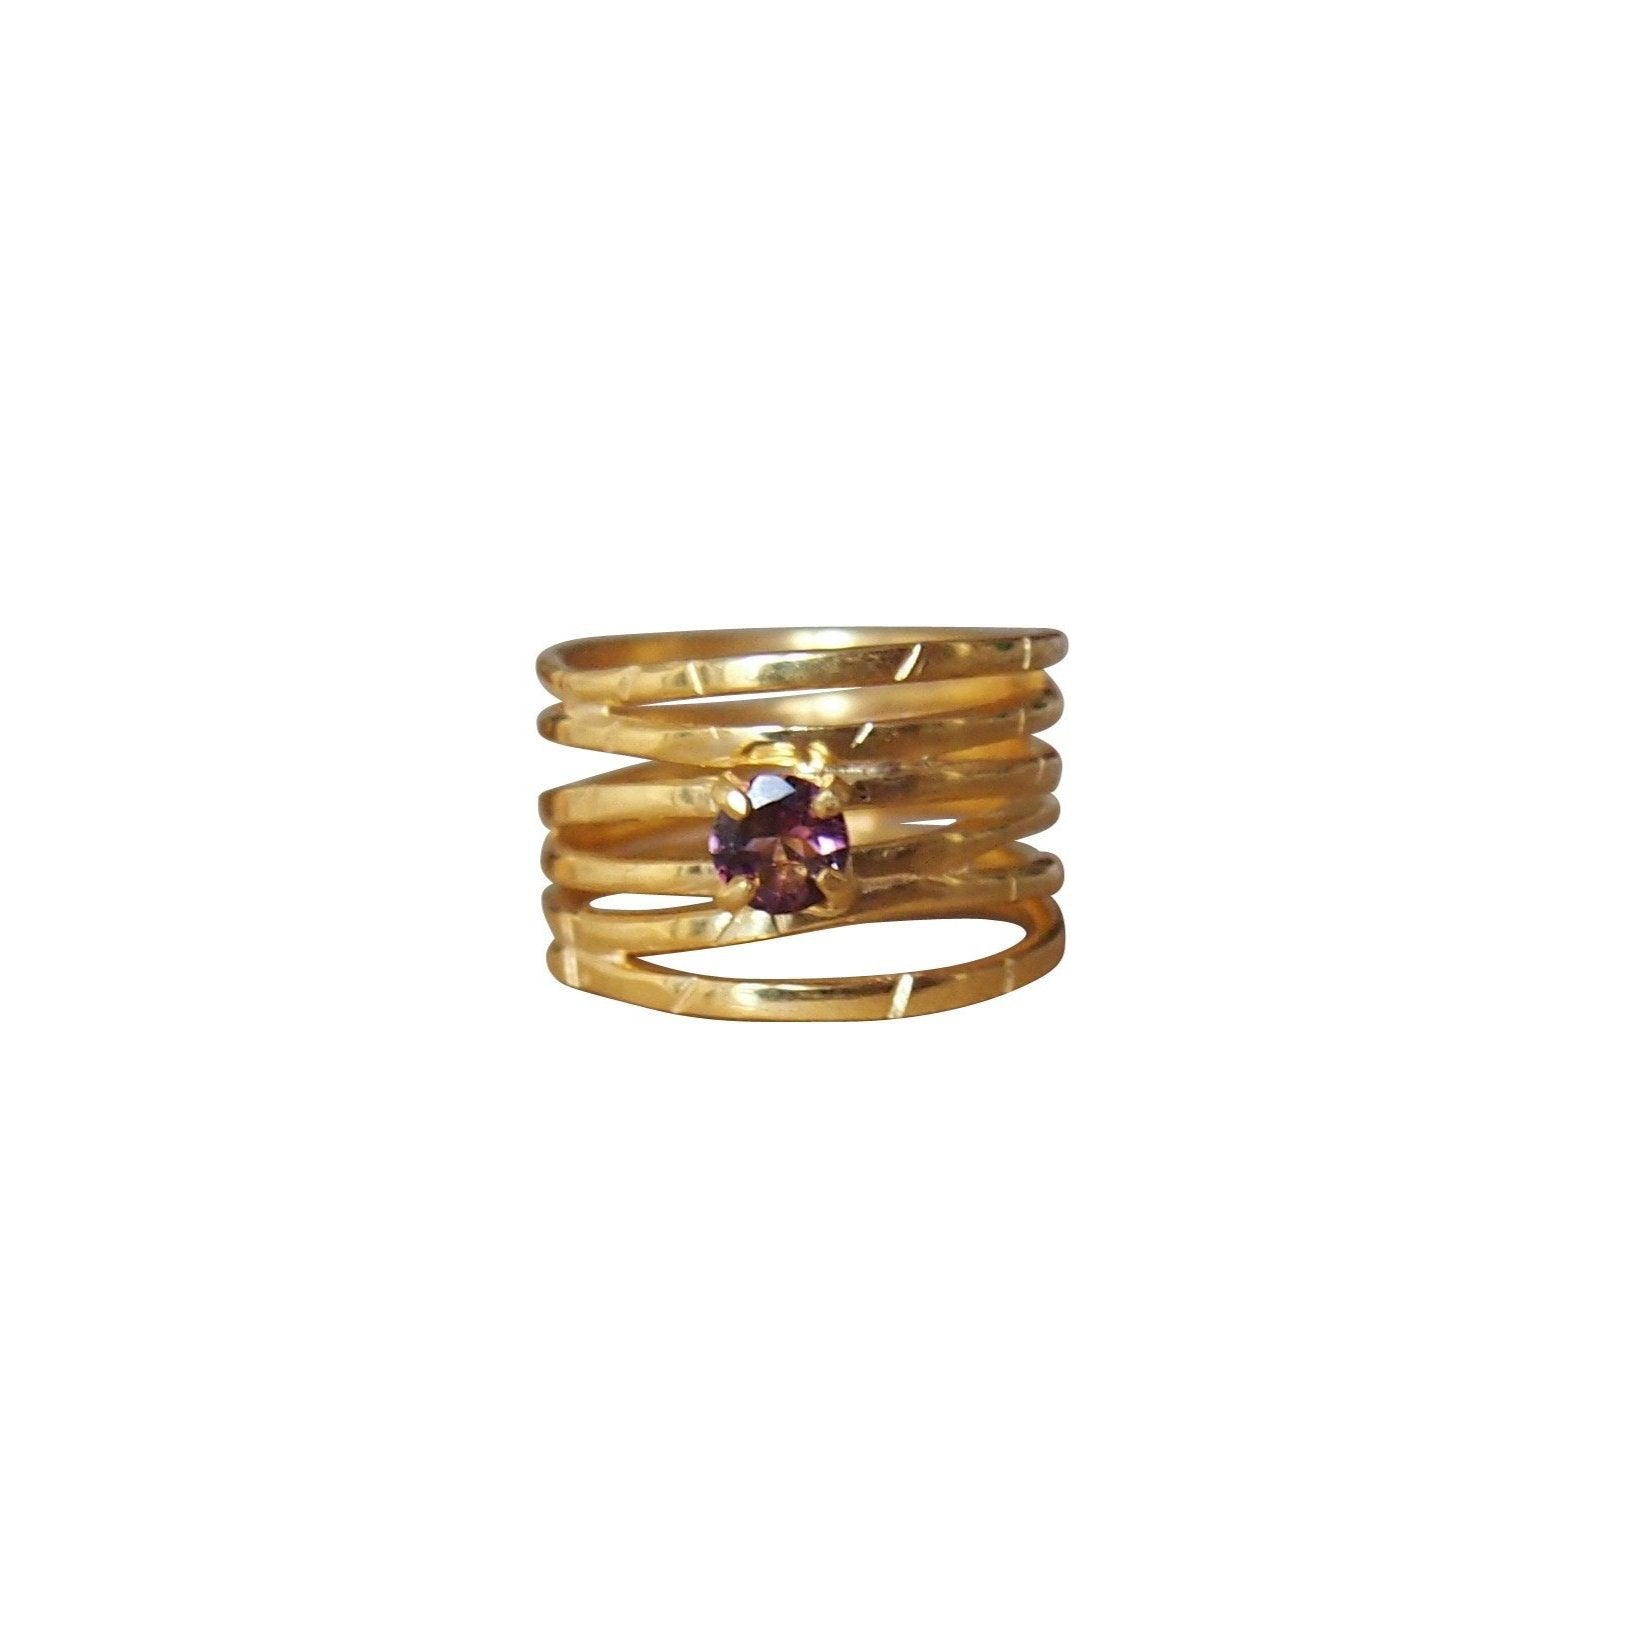 Gold wave ring with pink tourmaline